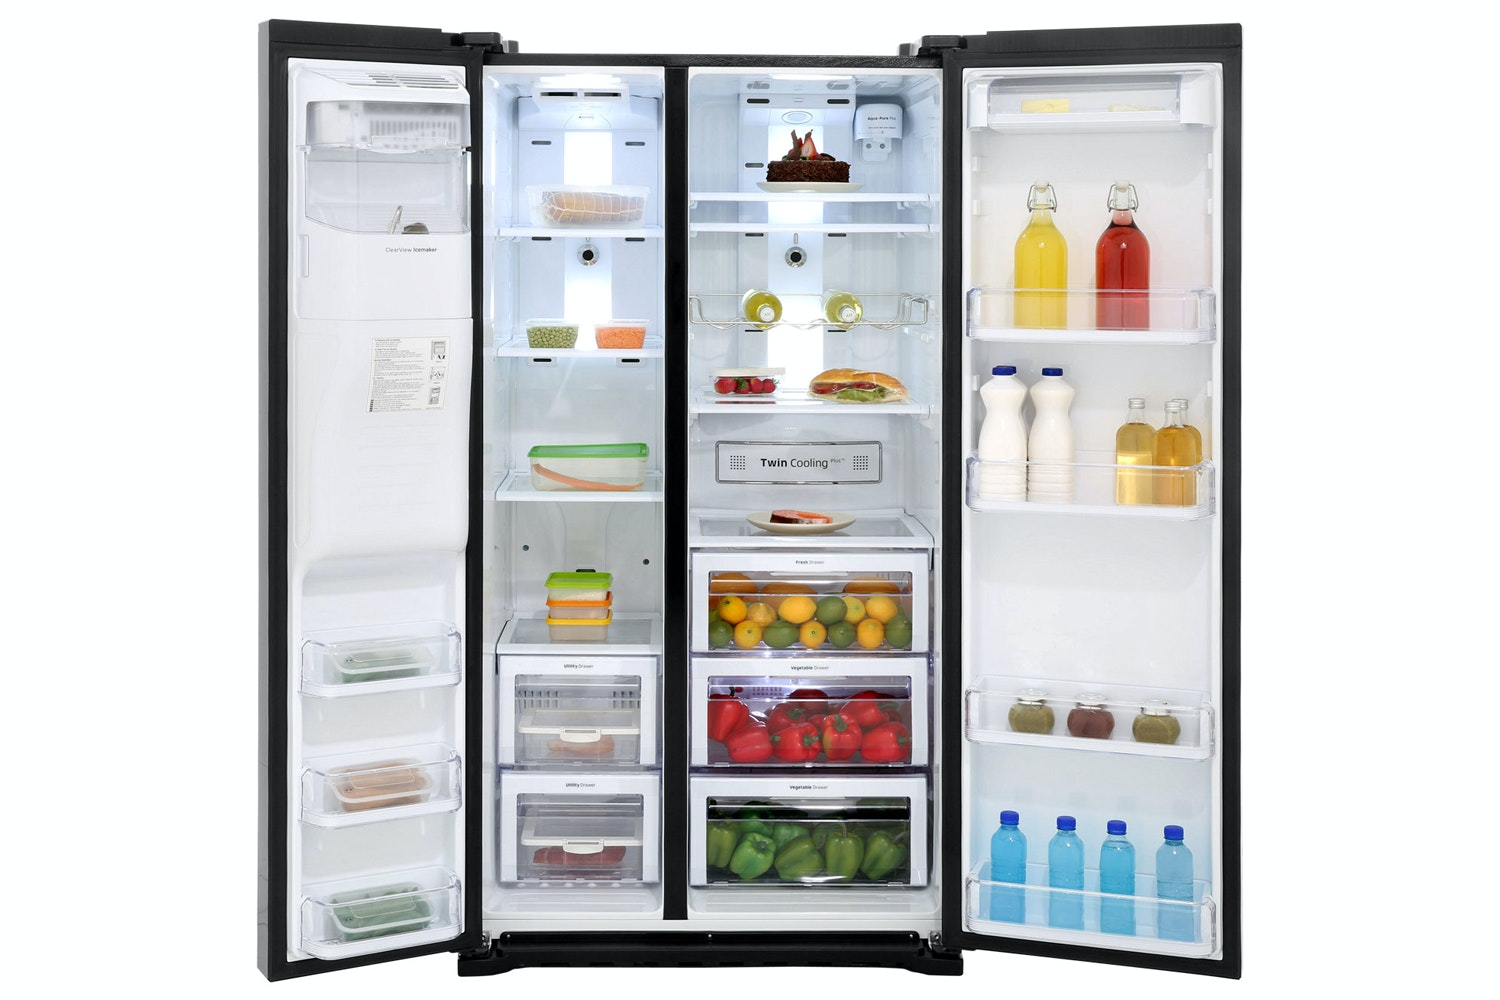 Samsung Side by Side Fridge Freezer | RSG5MUBP1/XEU